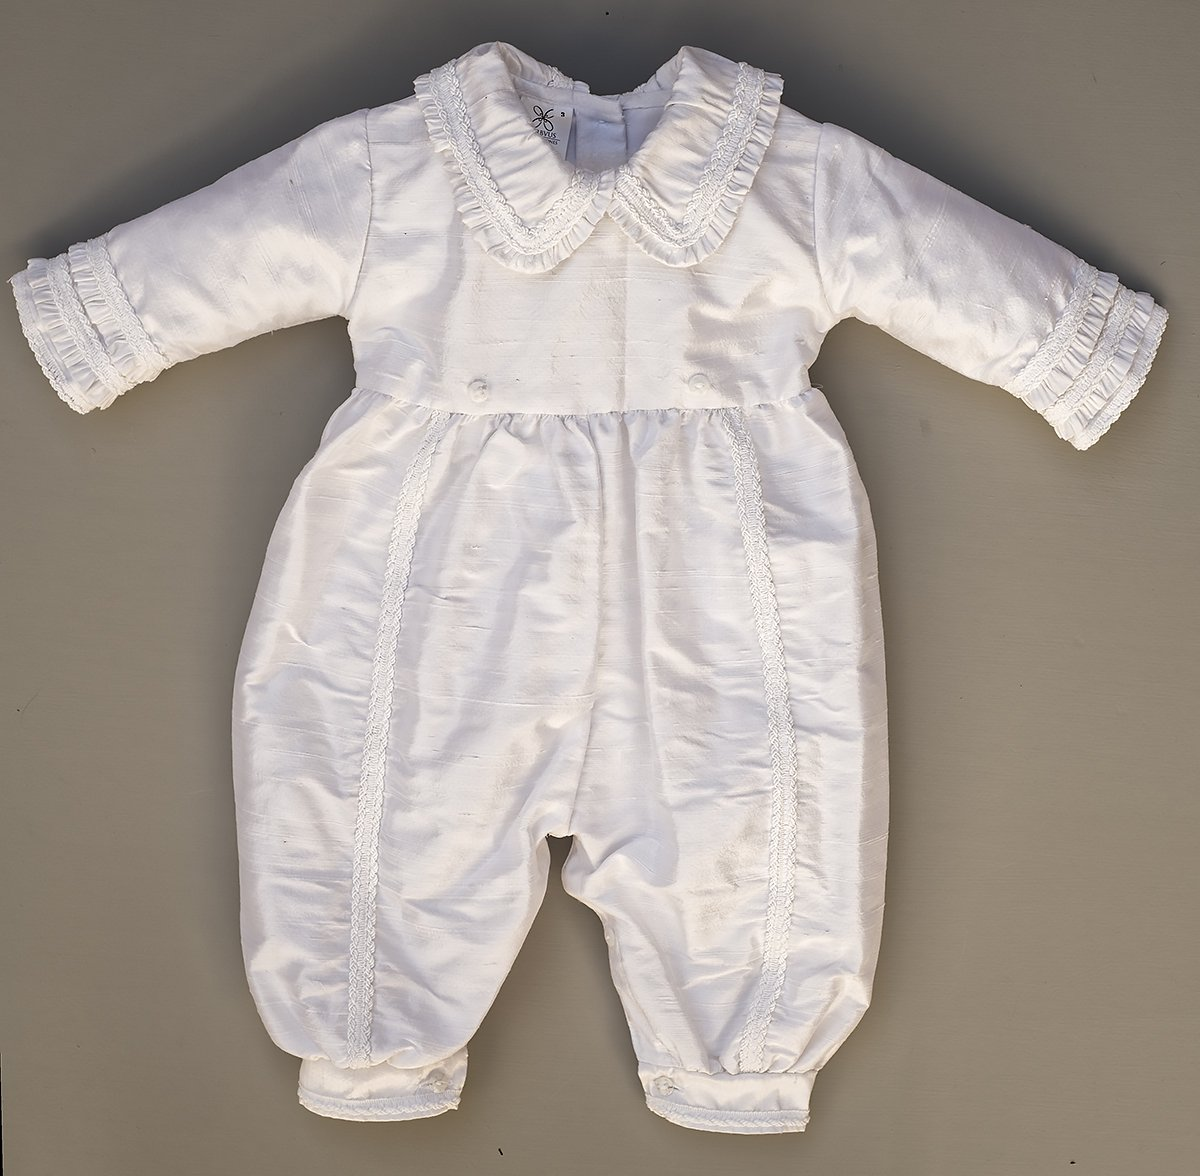 Heirloom Baby Boy's Christening Baptism Gown, Hand Made White Burbvus Ropones by Burbvus (Image #7)